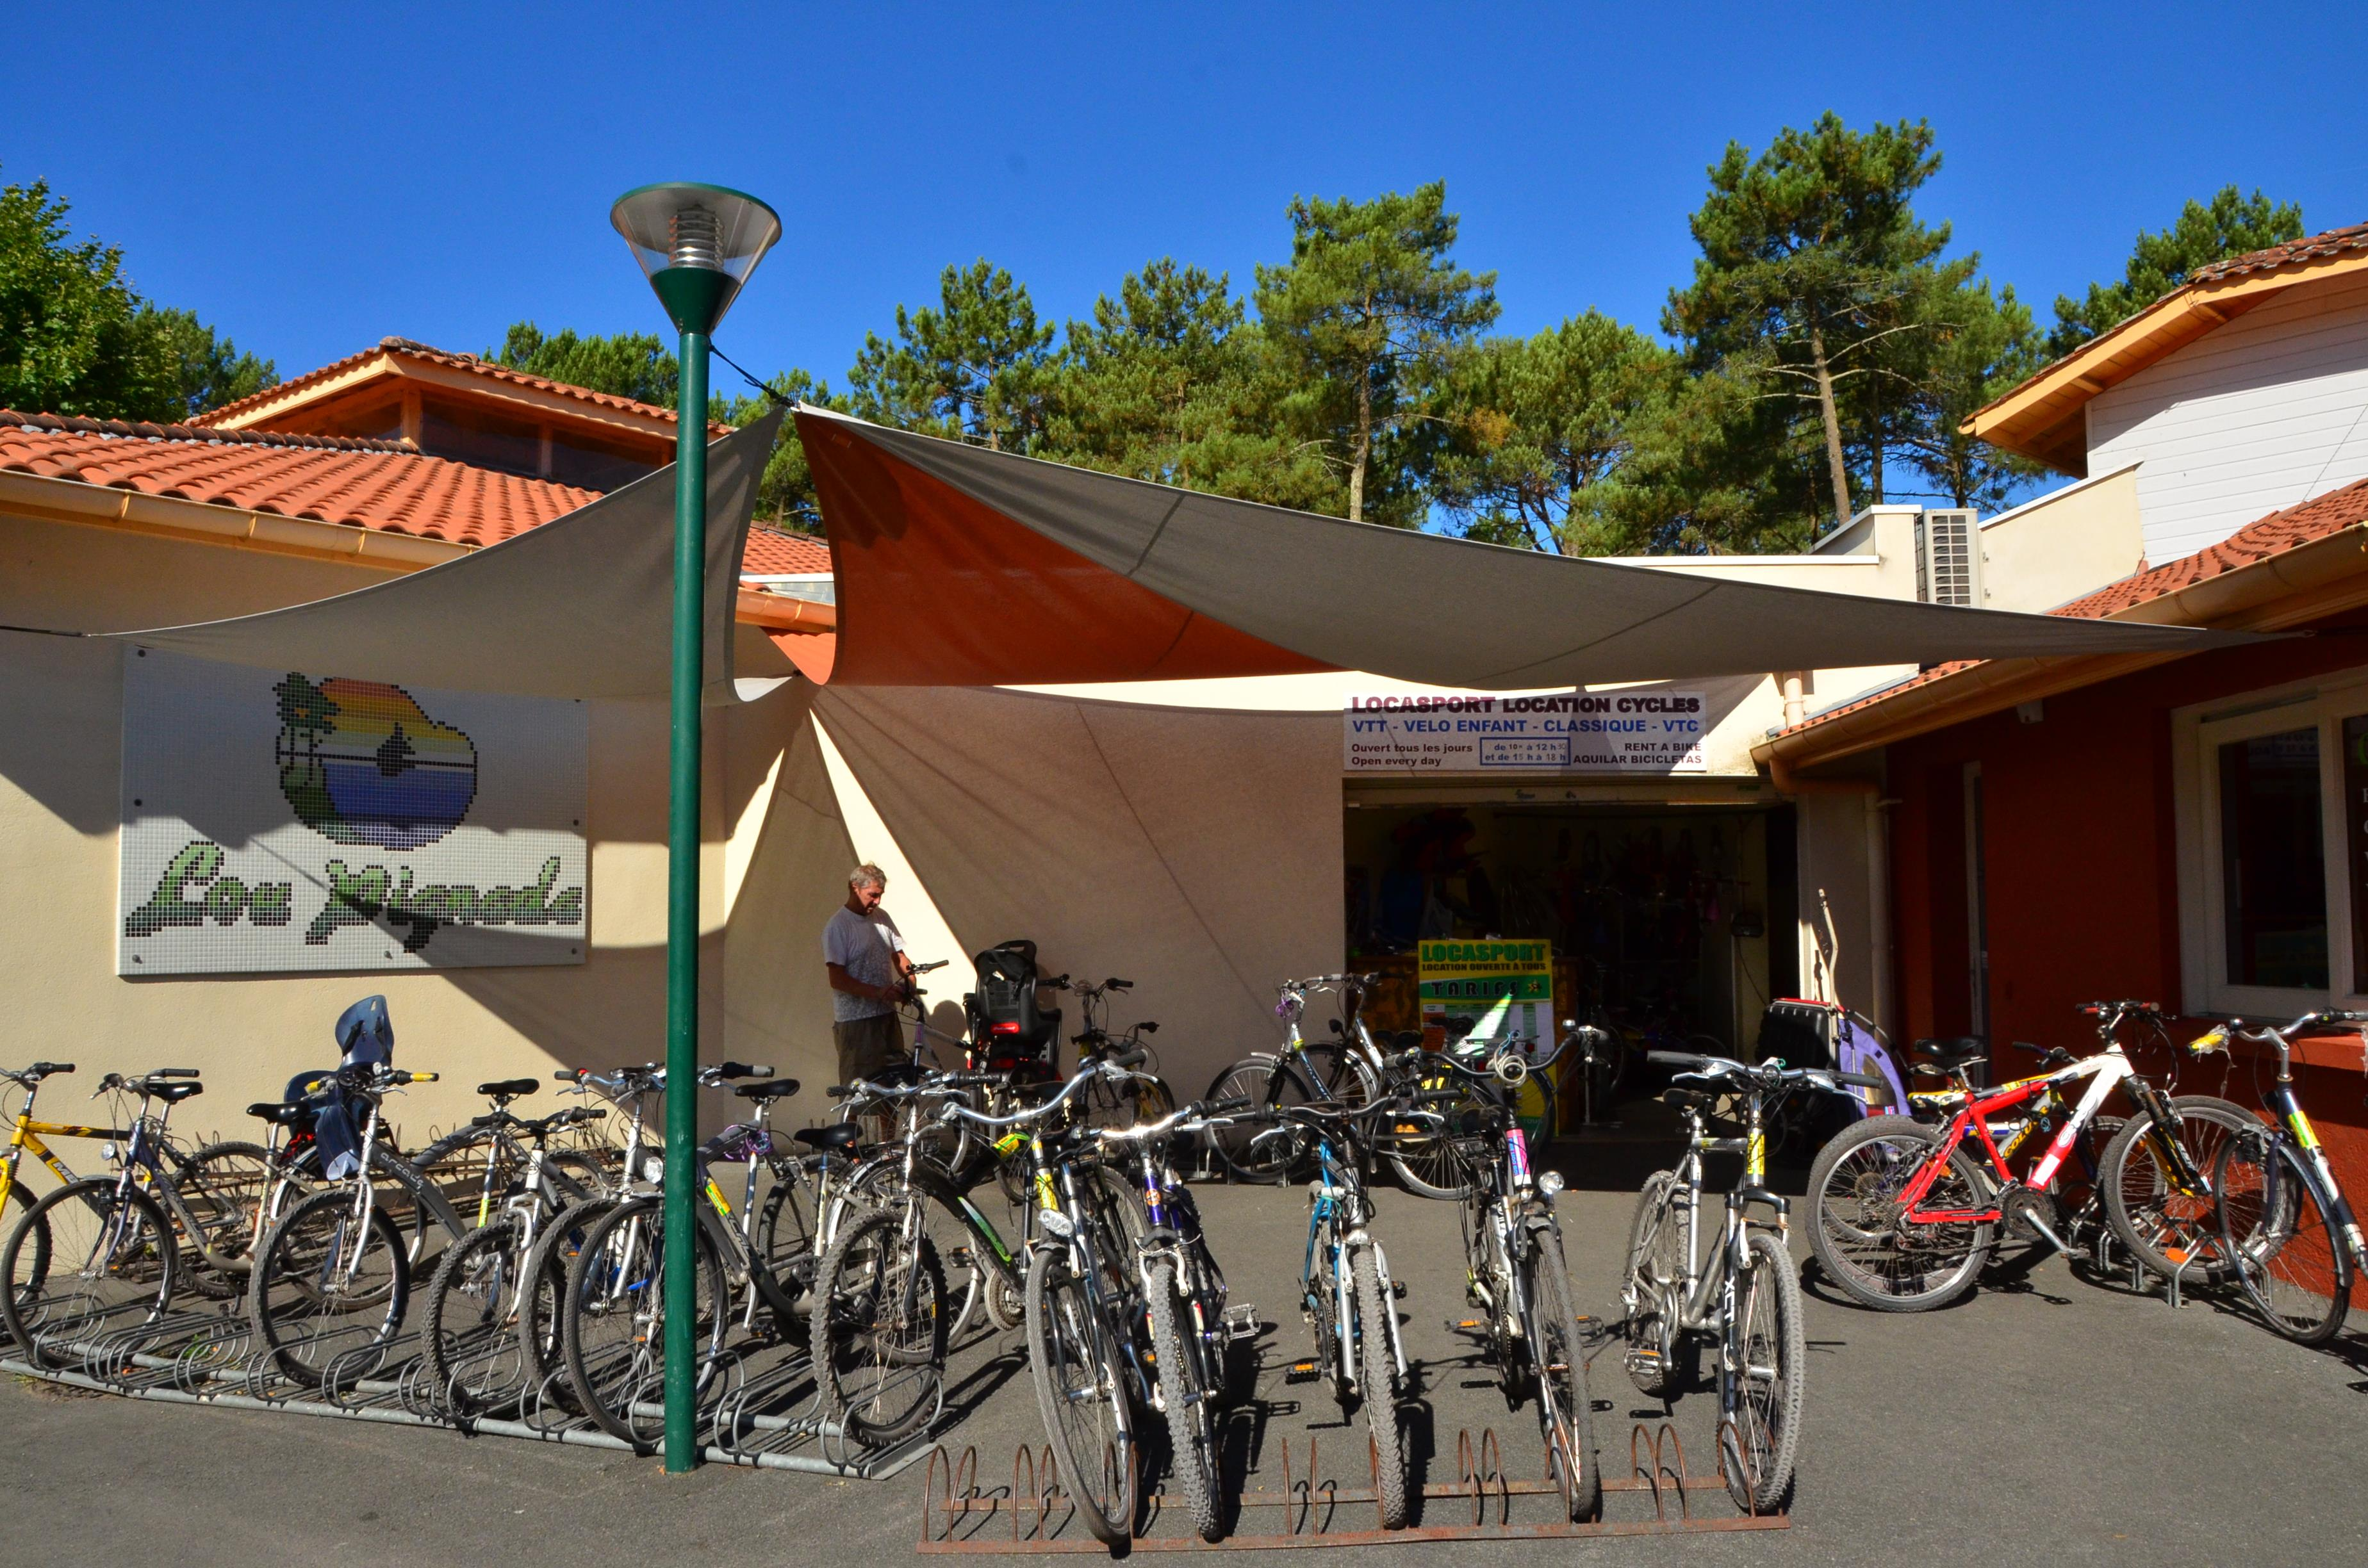 Services Camping Lou Pignada by Resasol - MESSANGES